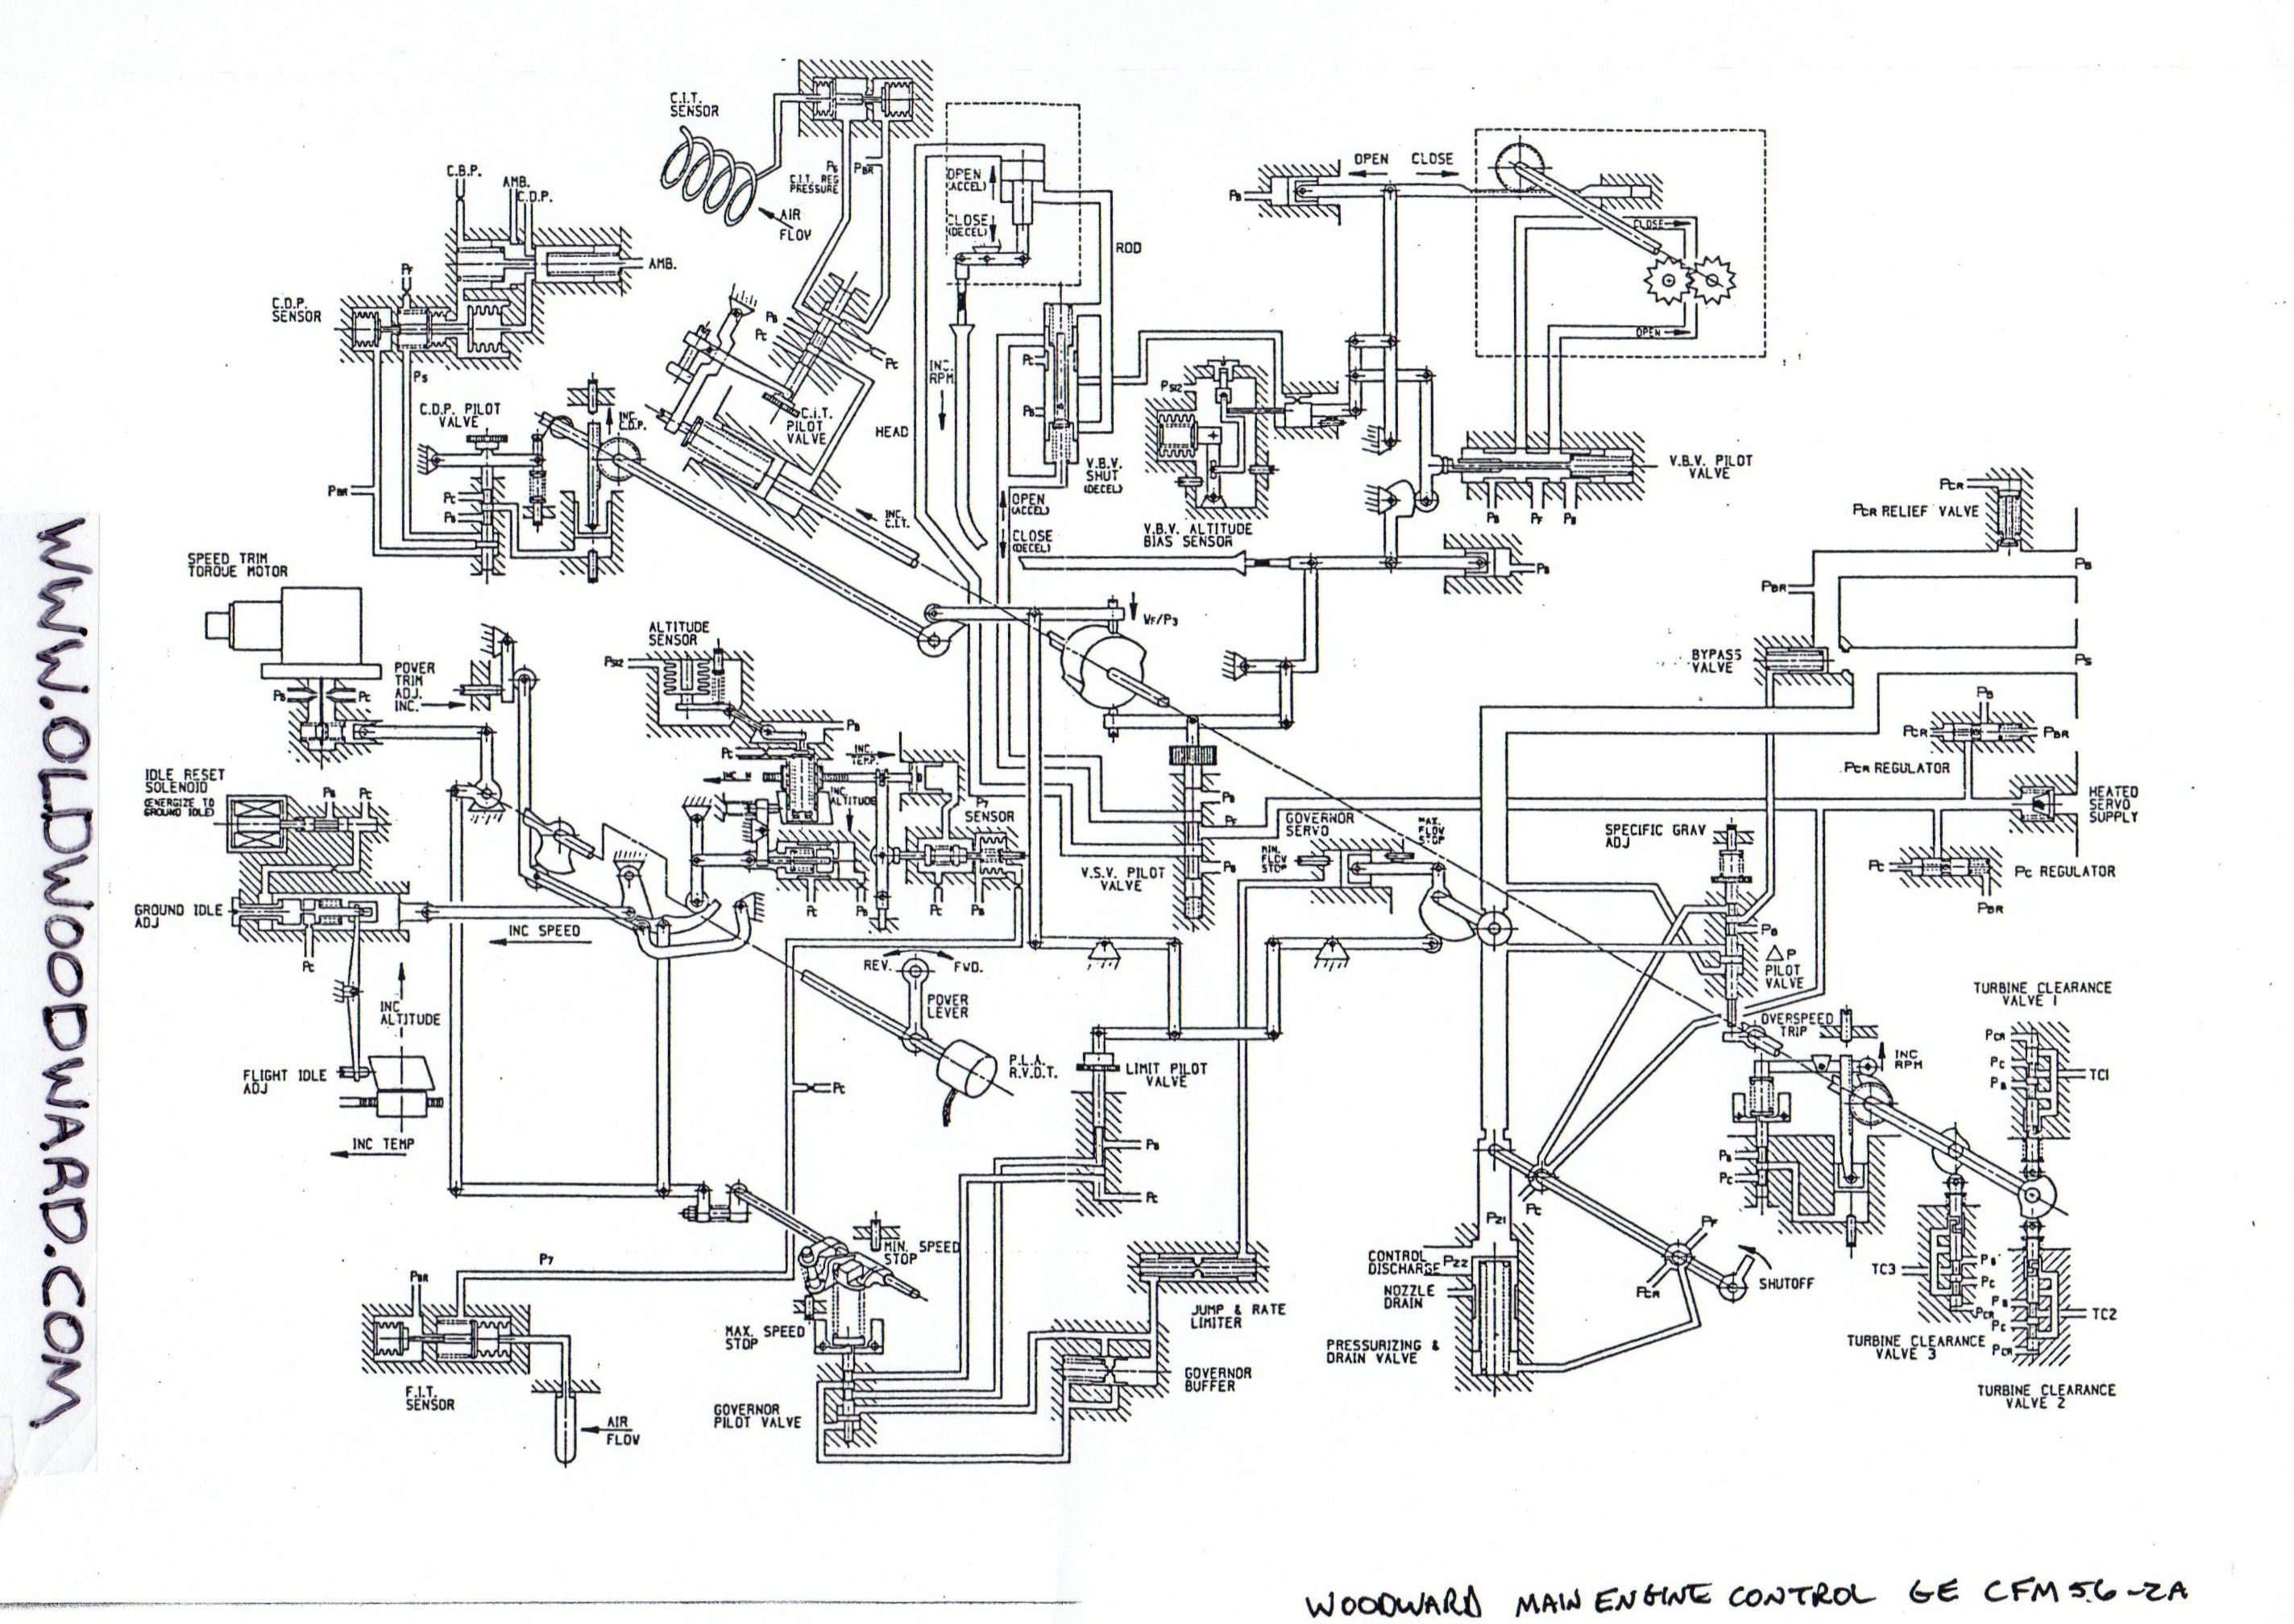 Schematic Drawing For The Woodward Gas Turbine Main Engine Control For The Cfm 56 2a Series Jet